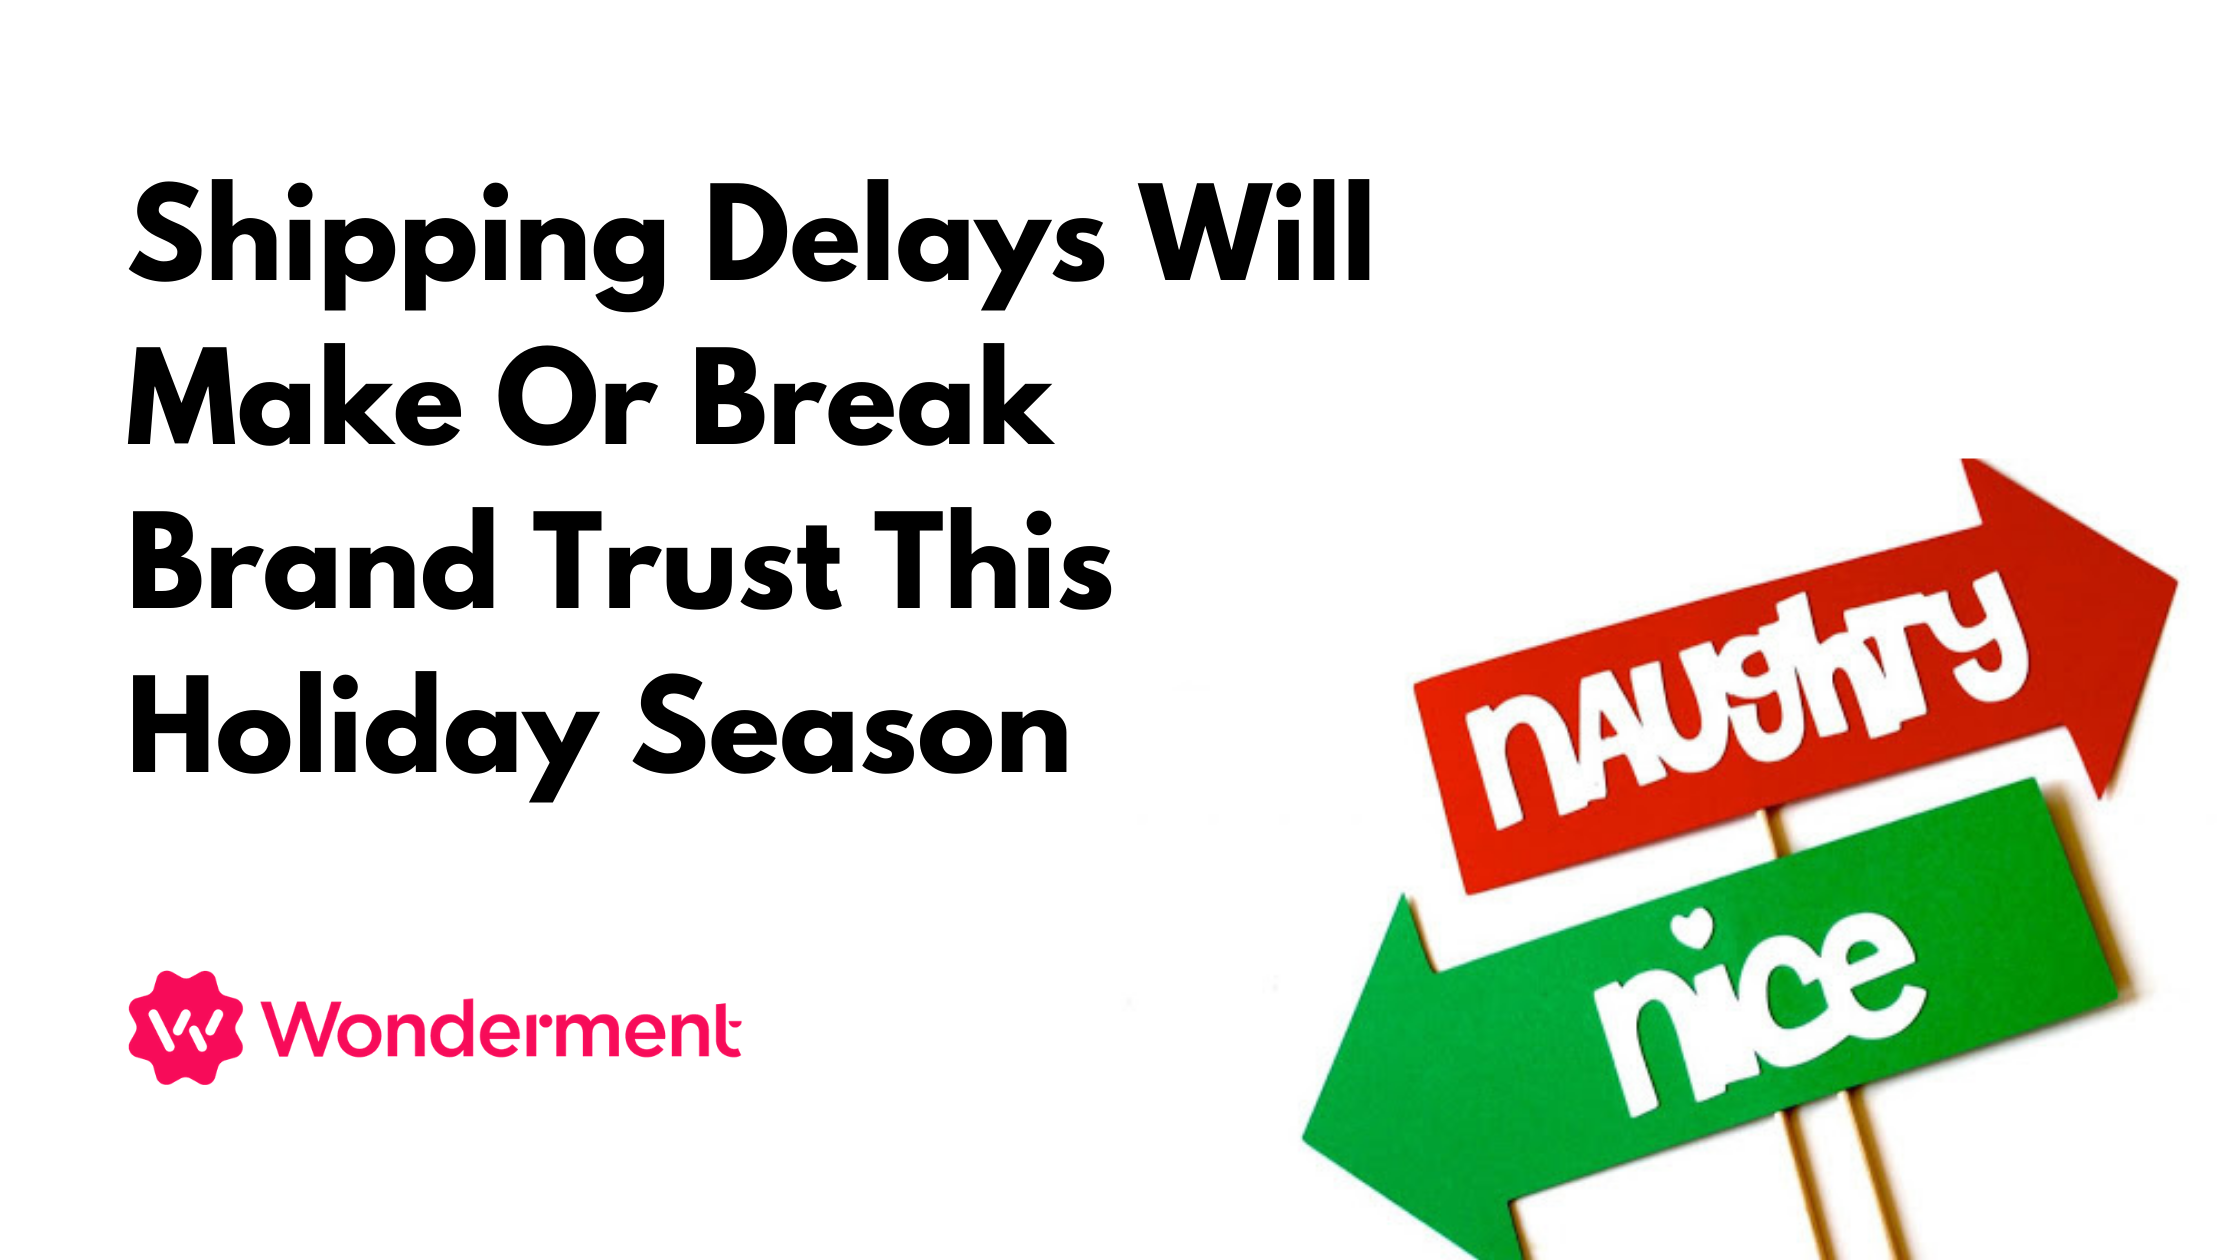 Shipping Delays Will Make or Break Brand Trust This Holiday Season